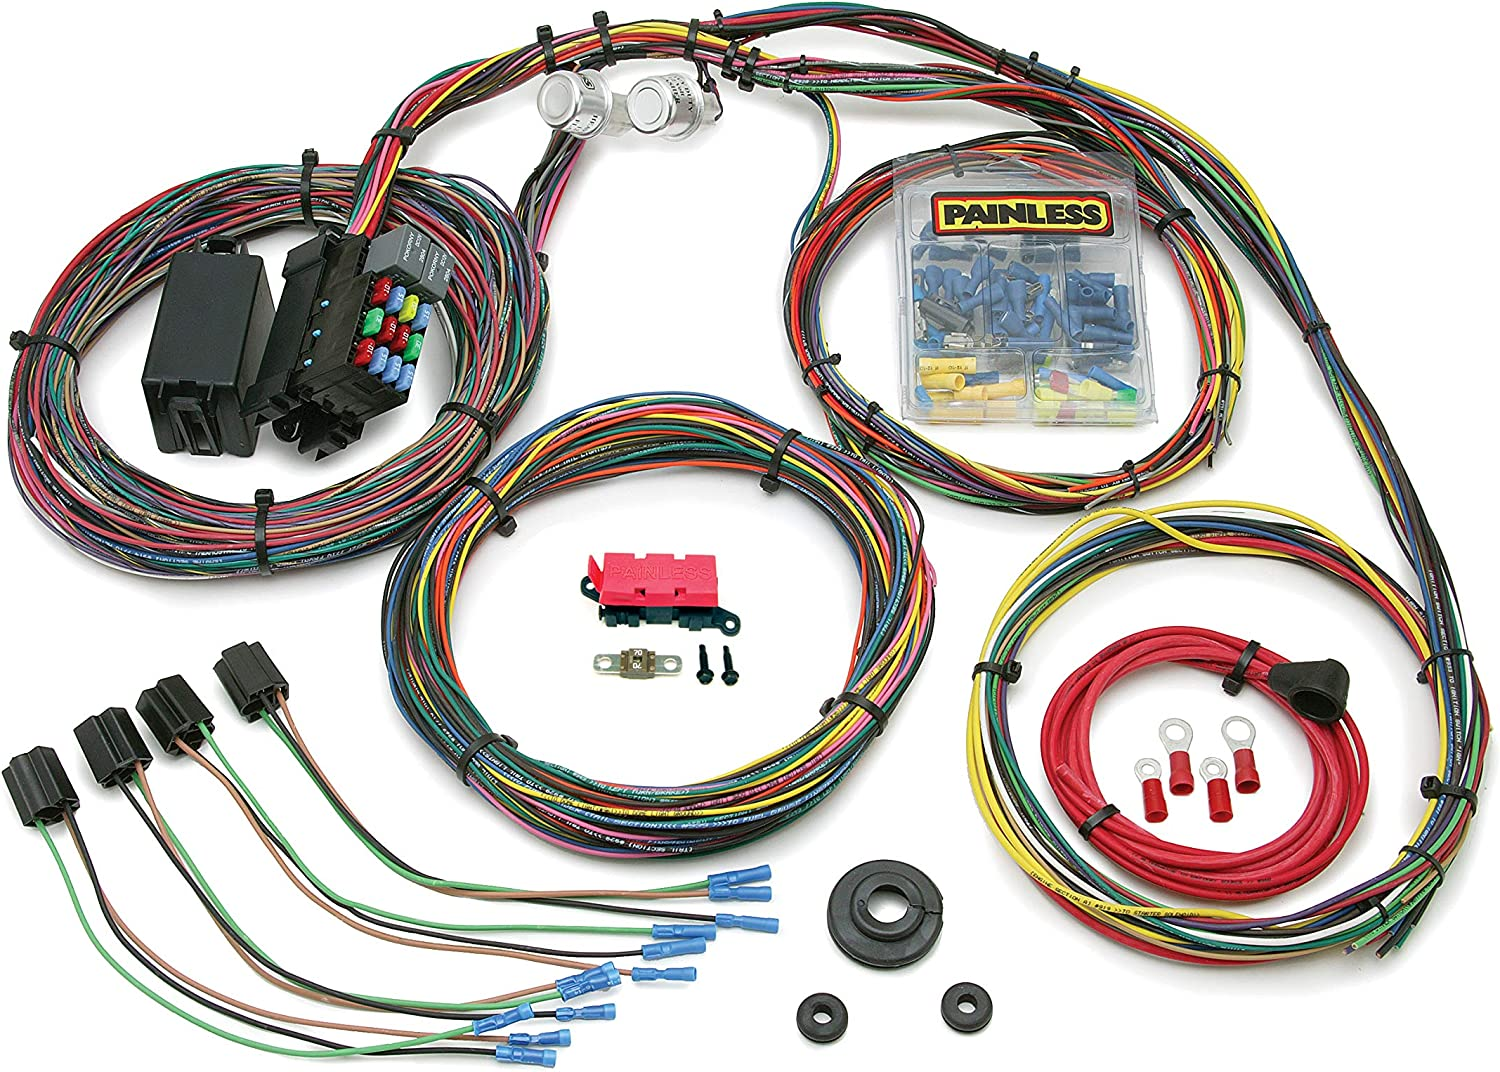 Painless Be super Max 66% OFF welcome Performance 10127 Customizable Mopar C Chassis Harness